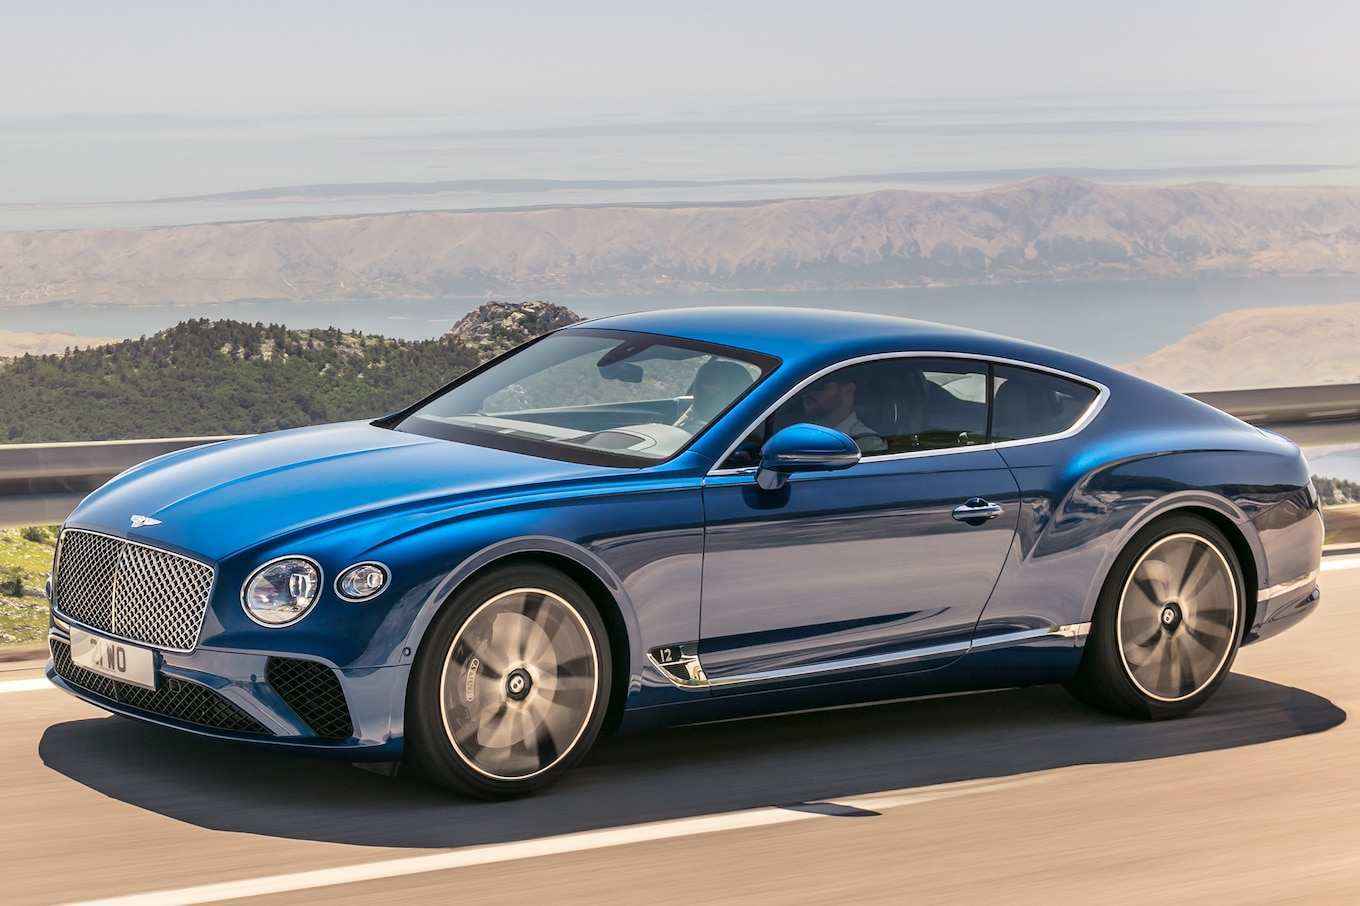 61 All New 2019 Bentley Continental GT Configurations